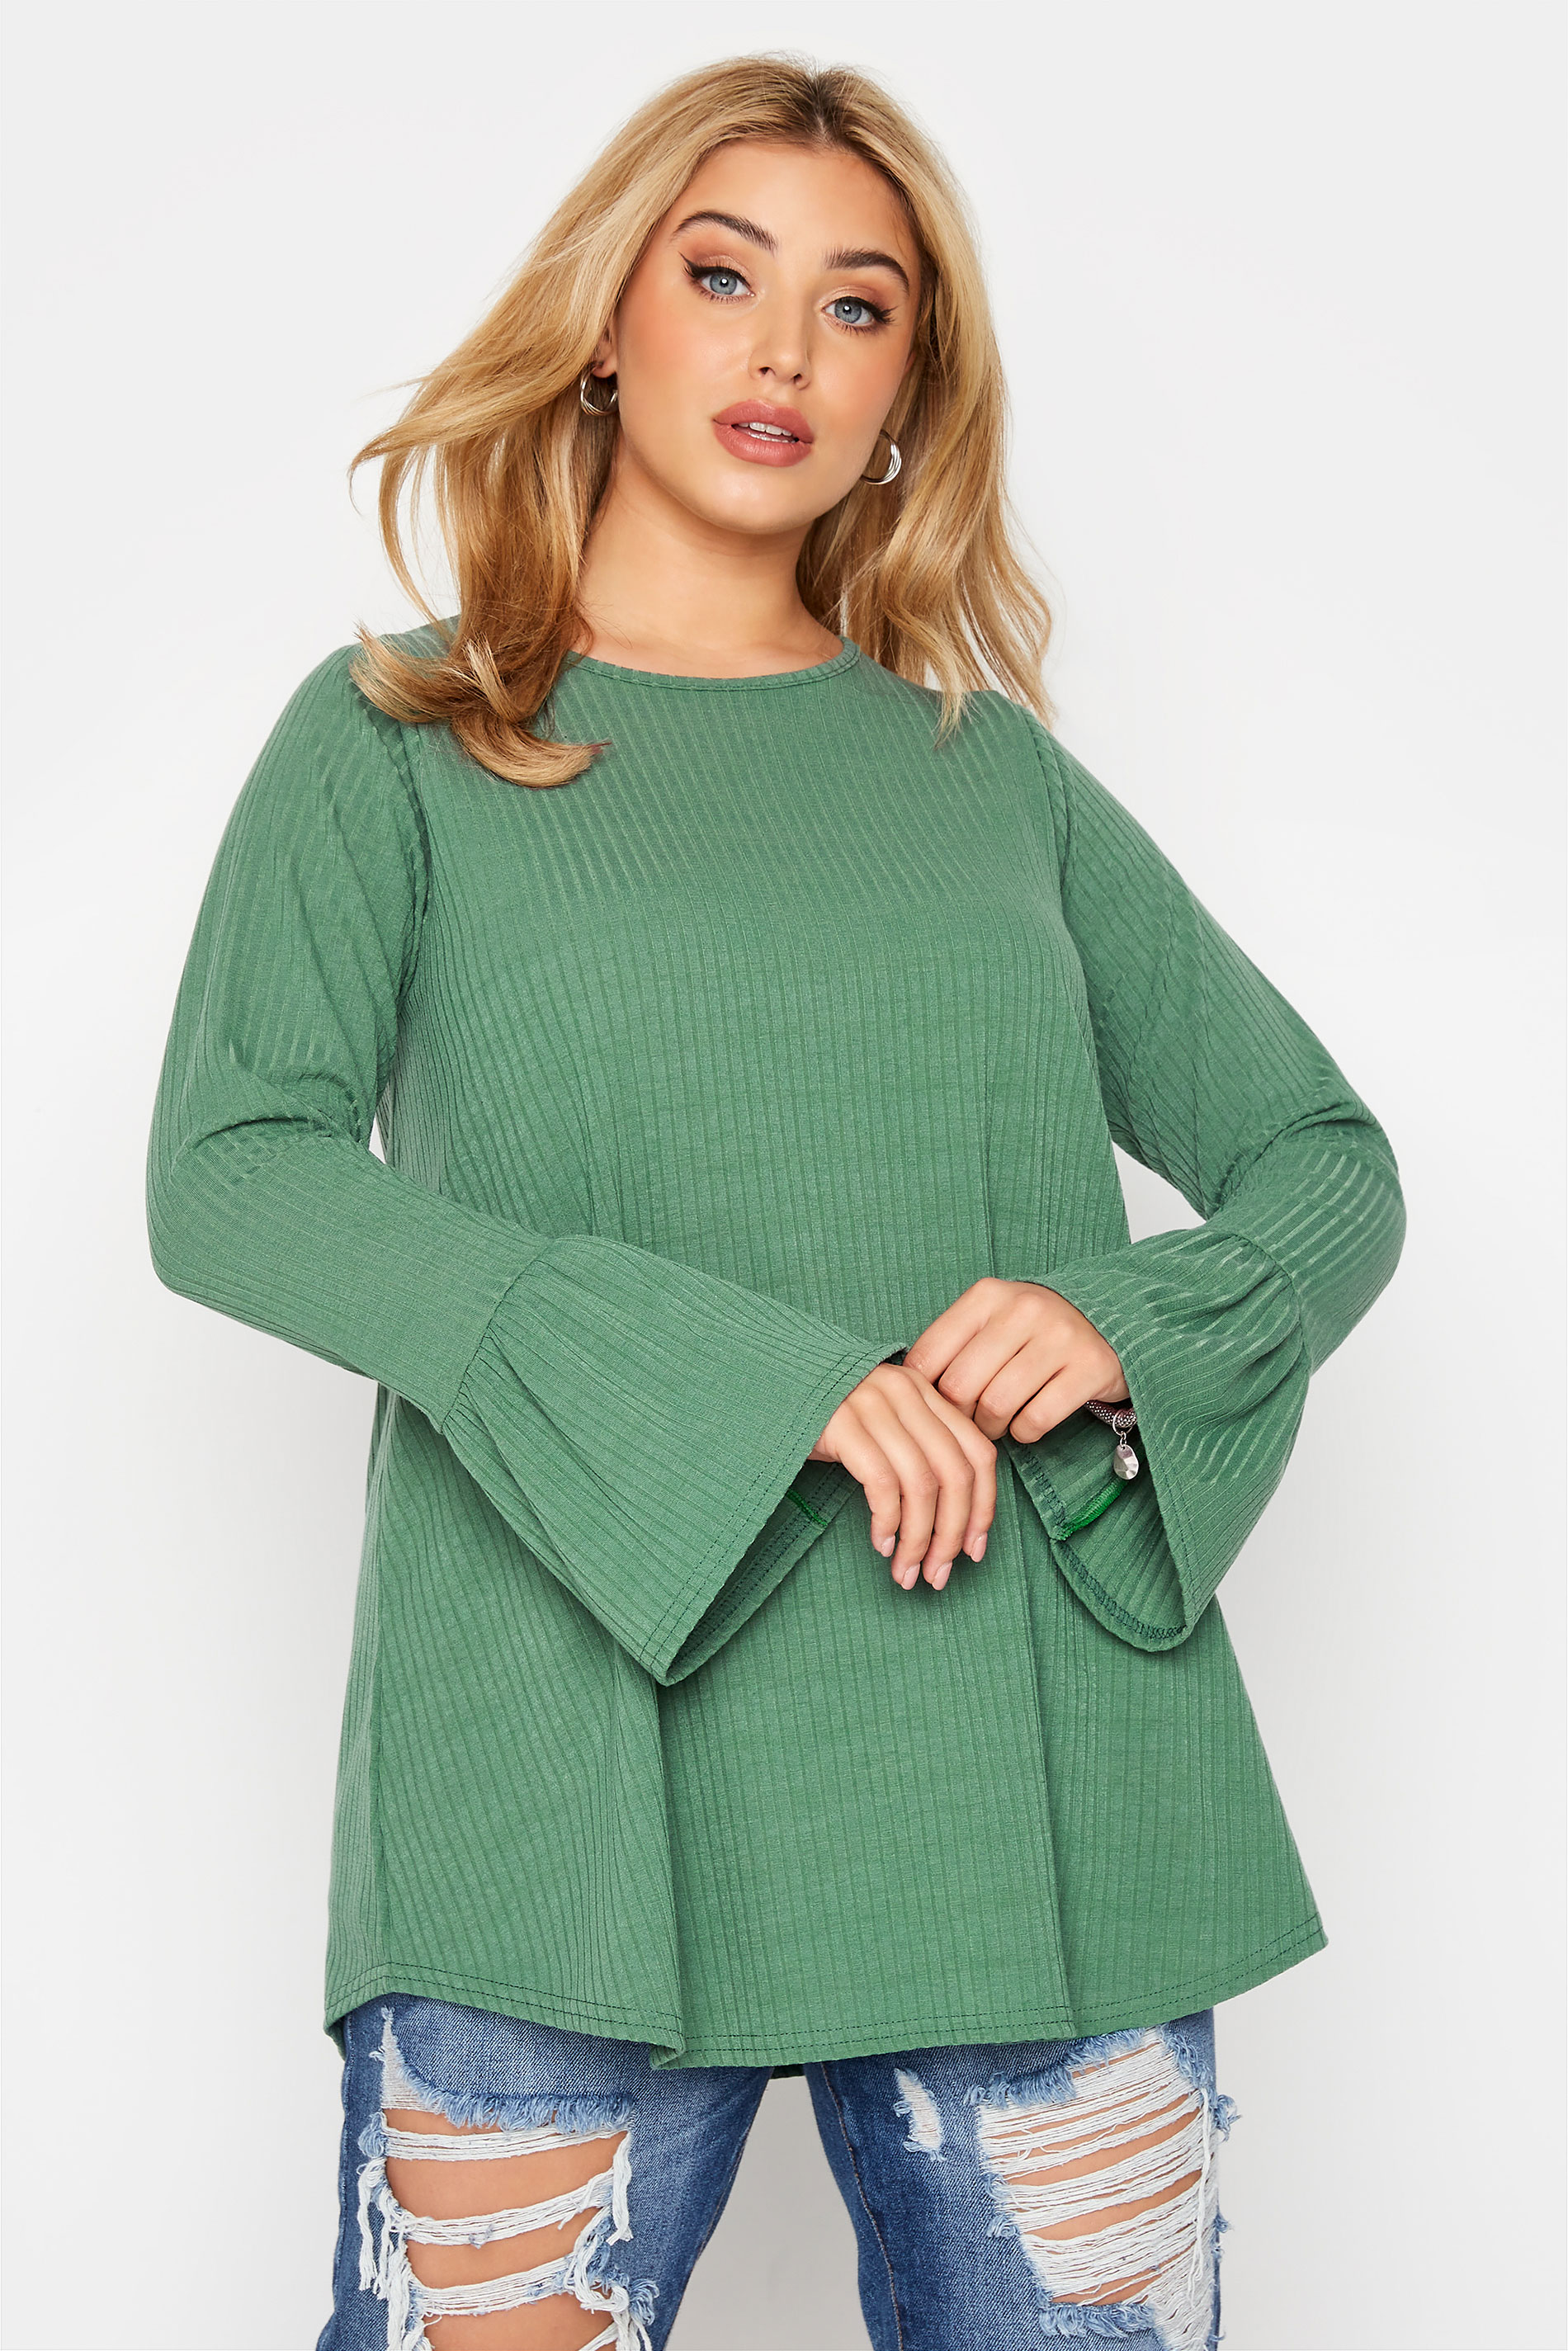 LIMITED COLLECTION Sage Green Ribbed Flare Long Sleeve Top_A.jpg